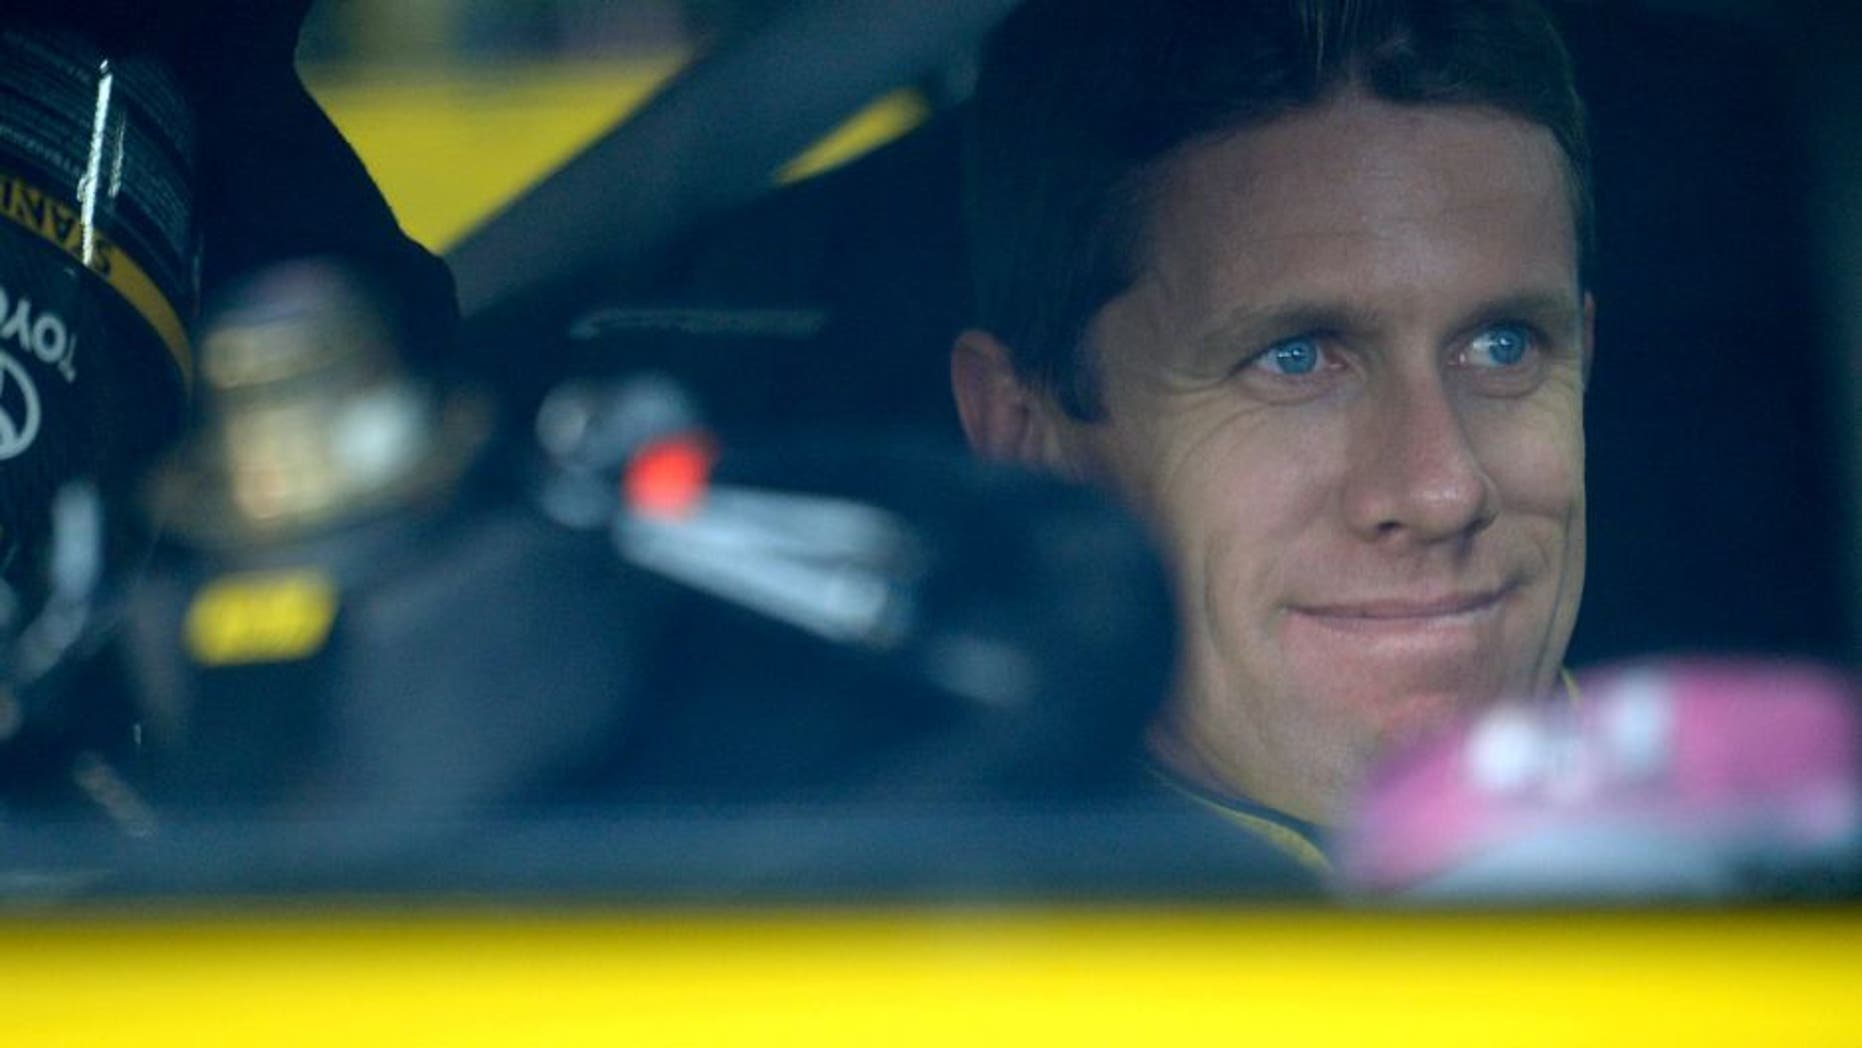 CHARLOTTE, NC - OCTOBER 09: Carl Edwards, driver of the #19 Stanley Toyota, sits in his car during practice for the NASCAR Sprint Cup Series Bank of America 500 at Charlotte Motor Speedway on October 9, 2015 in Charlotte, North Carolina. (Photo by Robert Laberge/Getty Images)